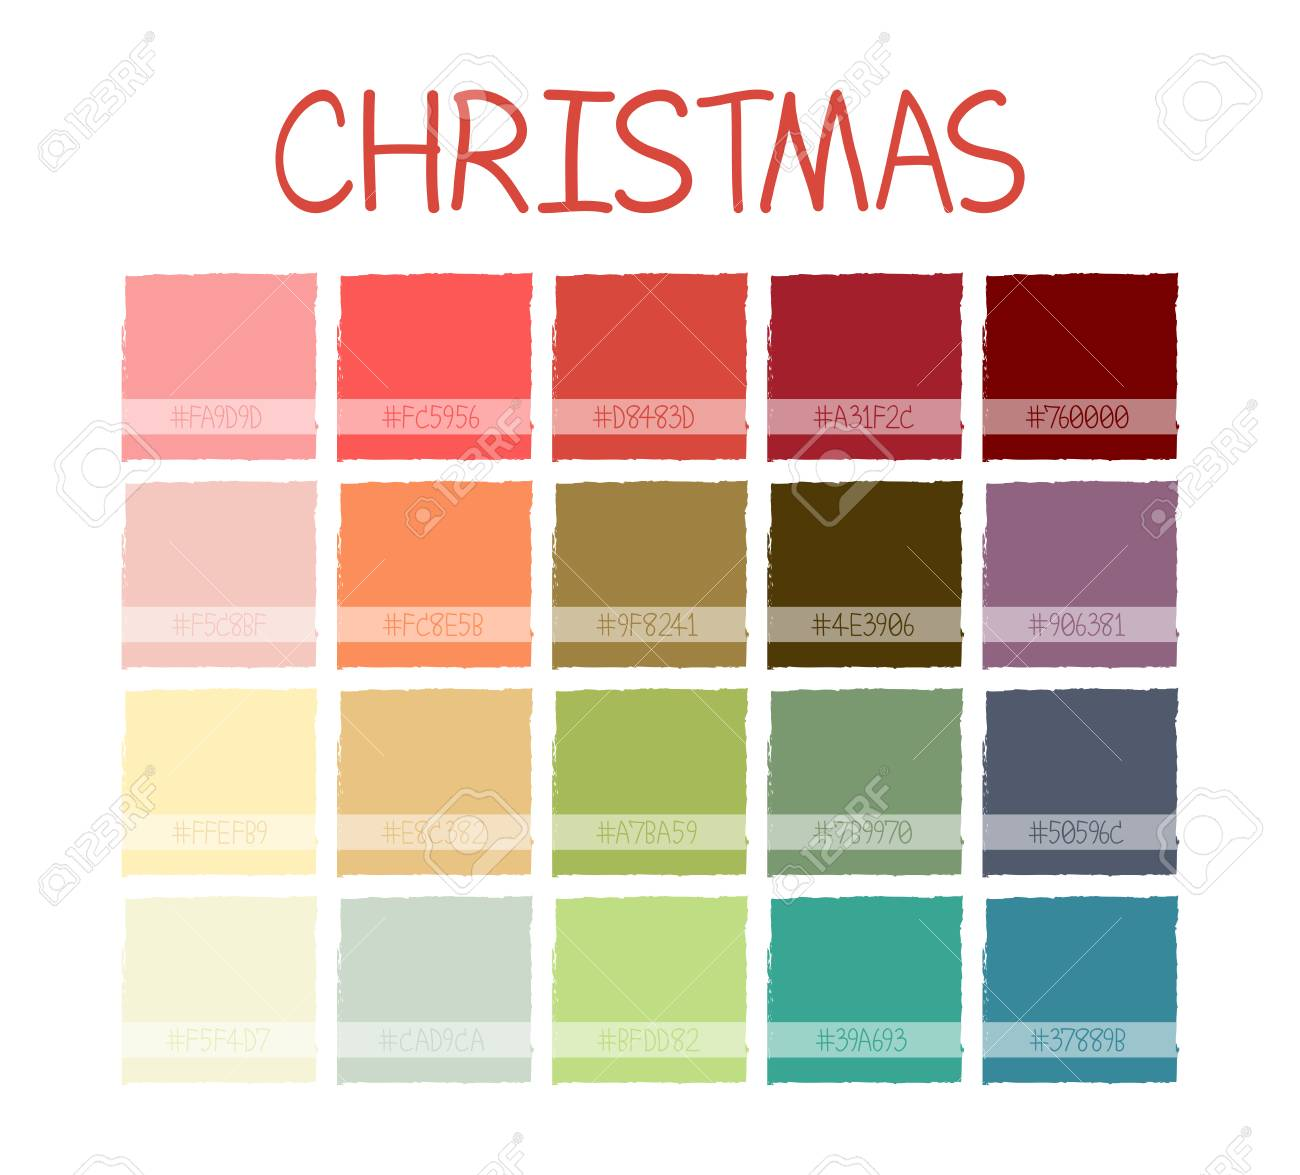 Christmas Colors Palette.Christmas Colorful Tone Colors Palette Scheme Pastel Vintage